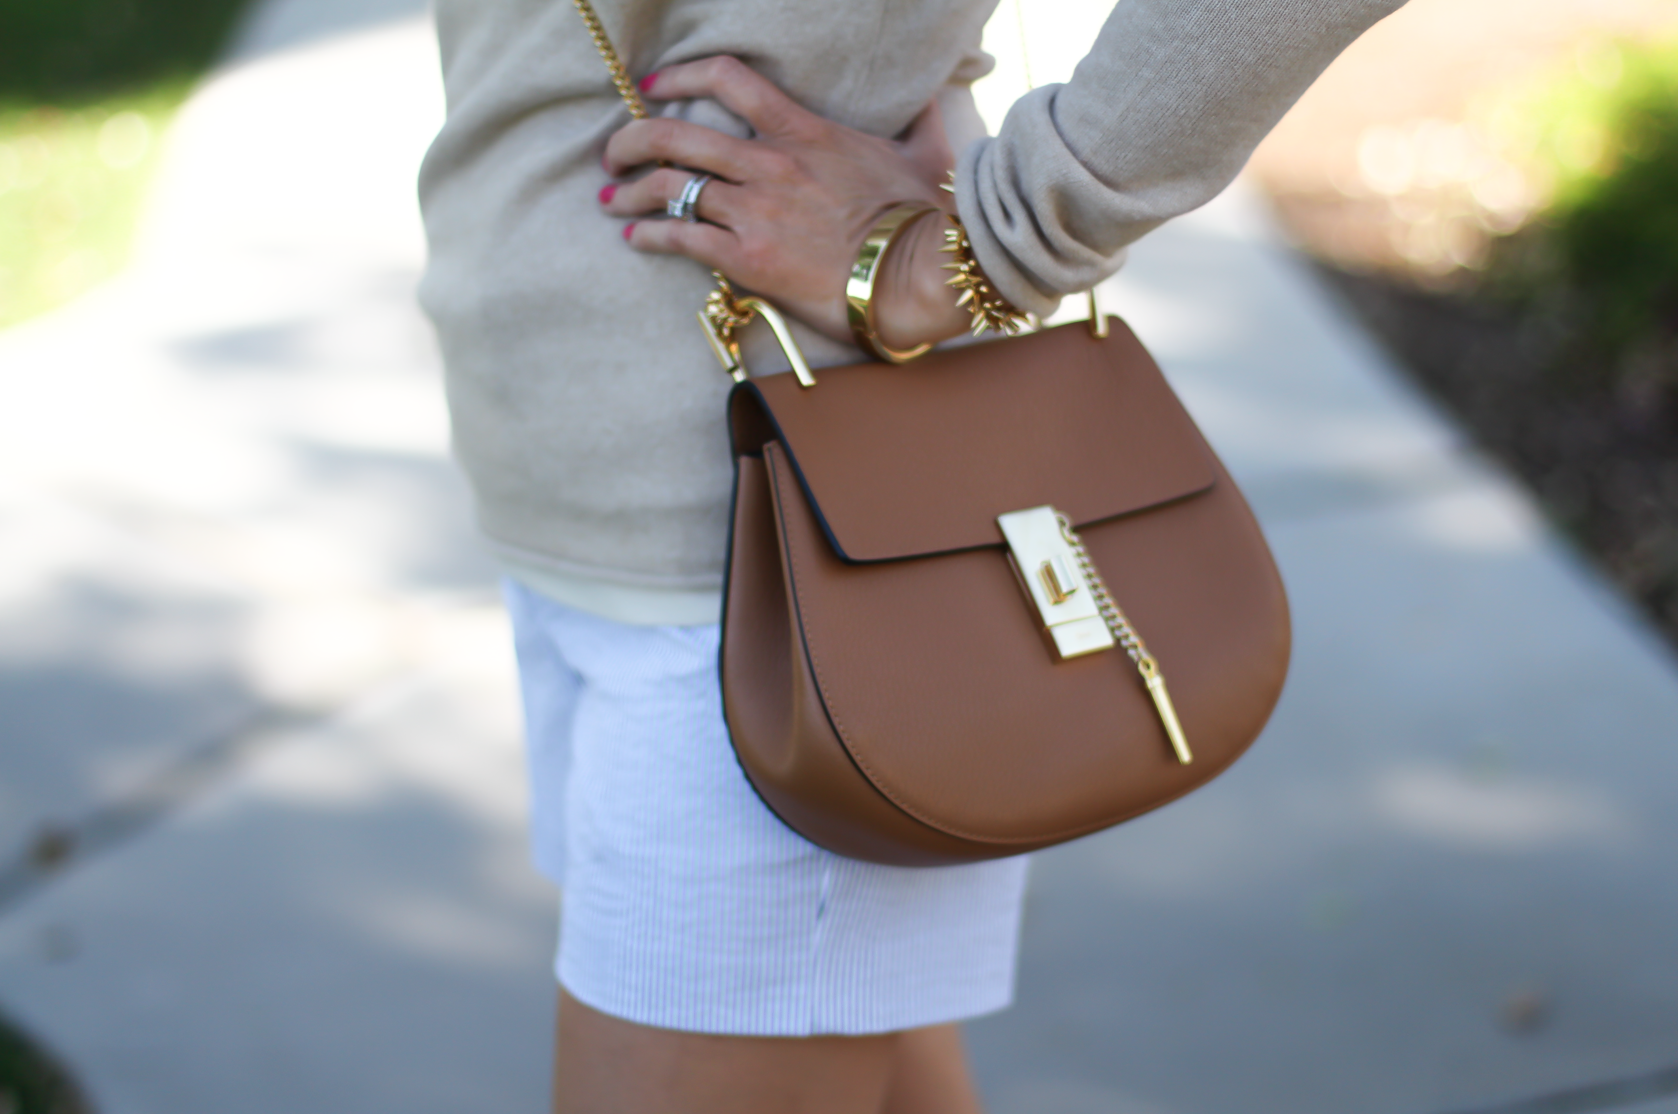 Seersucker Shorts, Tan Cashmere Sweater, Tan Leather Ankle Strap Heels, Tan Leather Chain Strap Bag, Ann Taylor, J.Crew, Steve Madden, Chloe  11